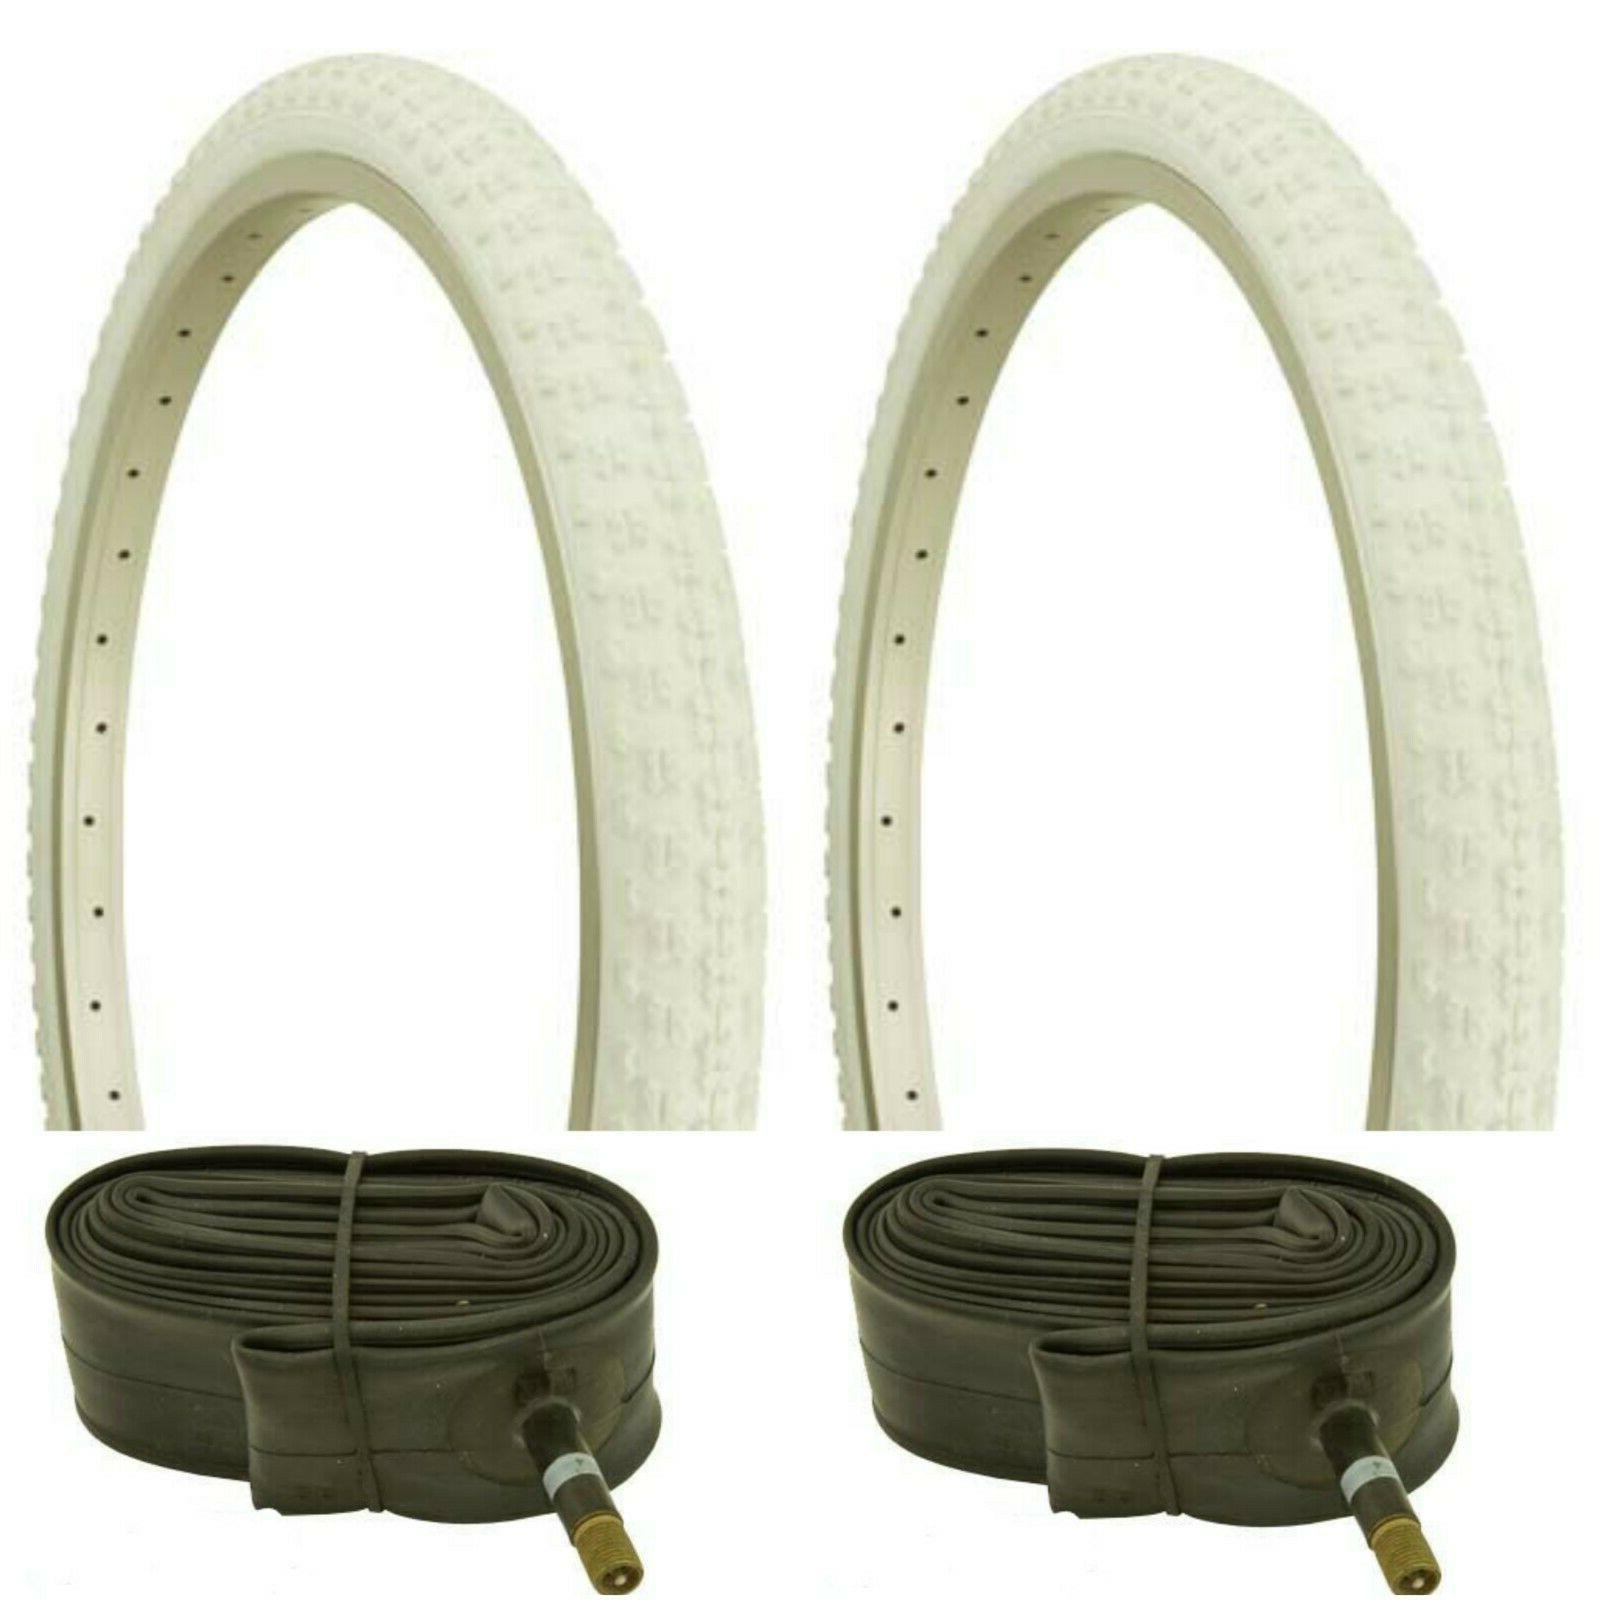 1 white bmx bike trailer jogger tire